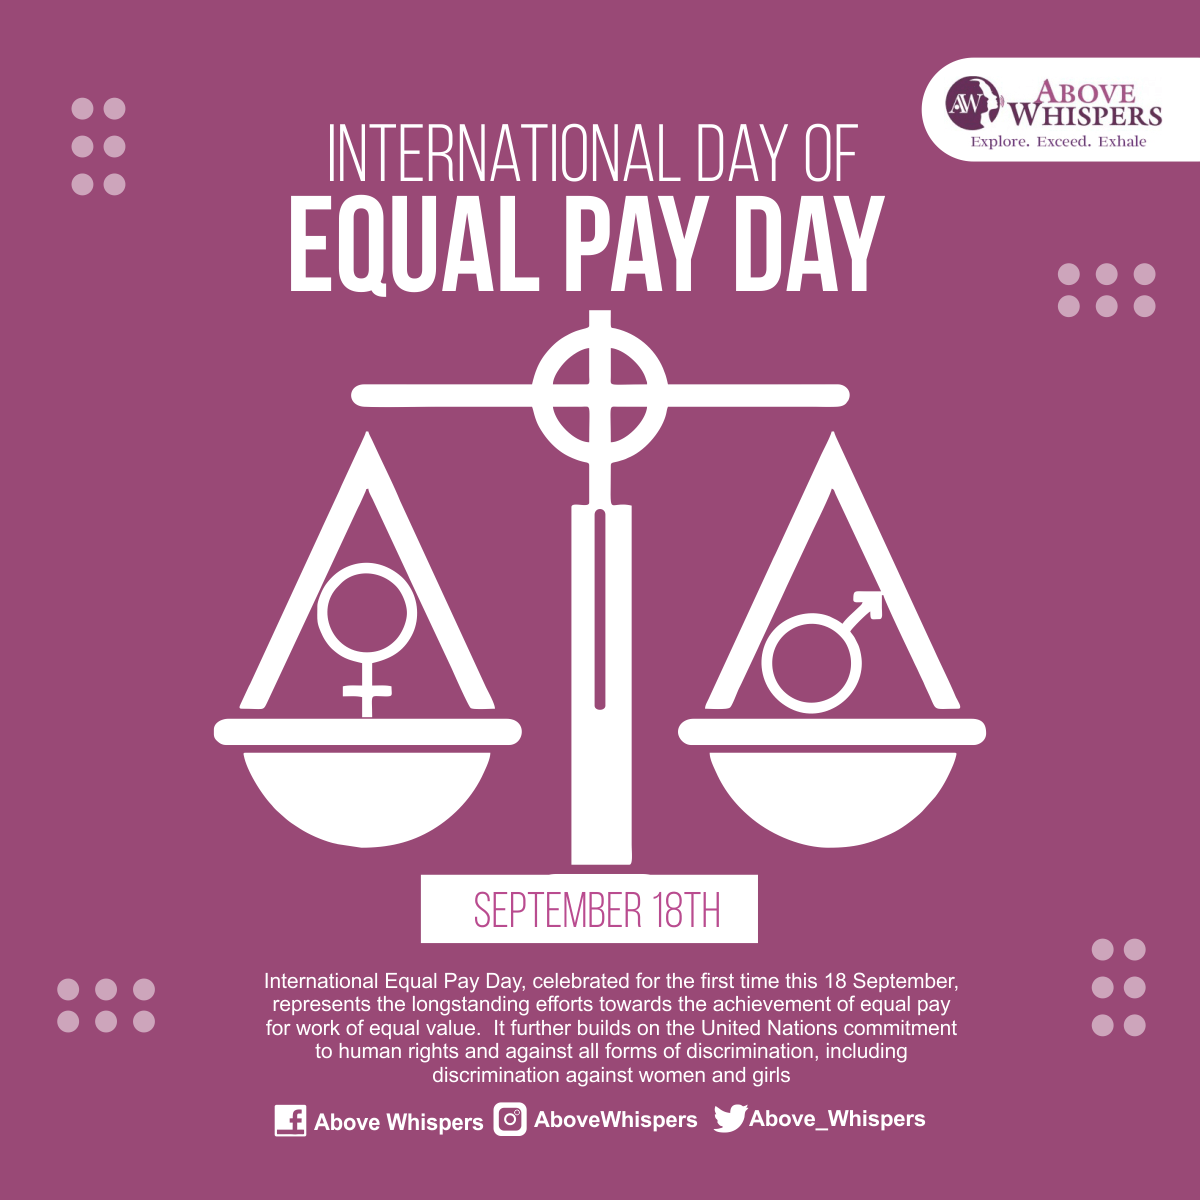 International Day of Equal Pay day